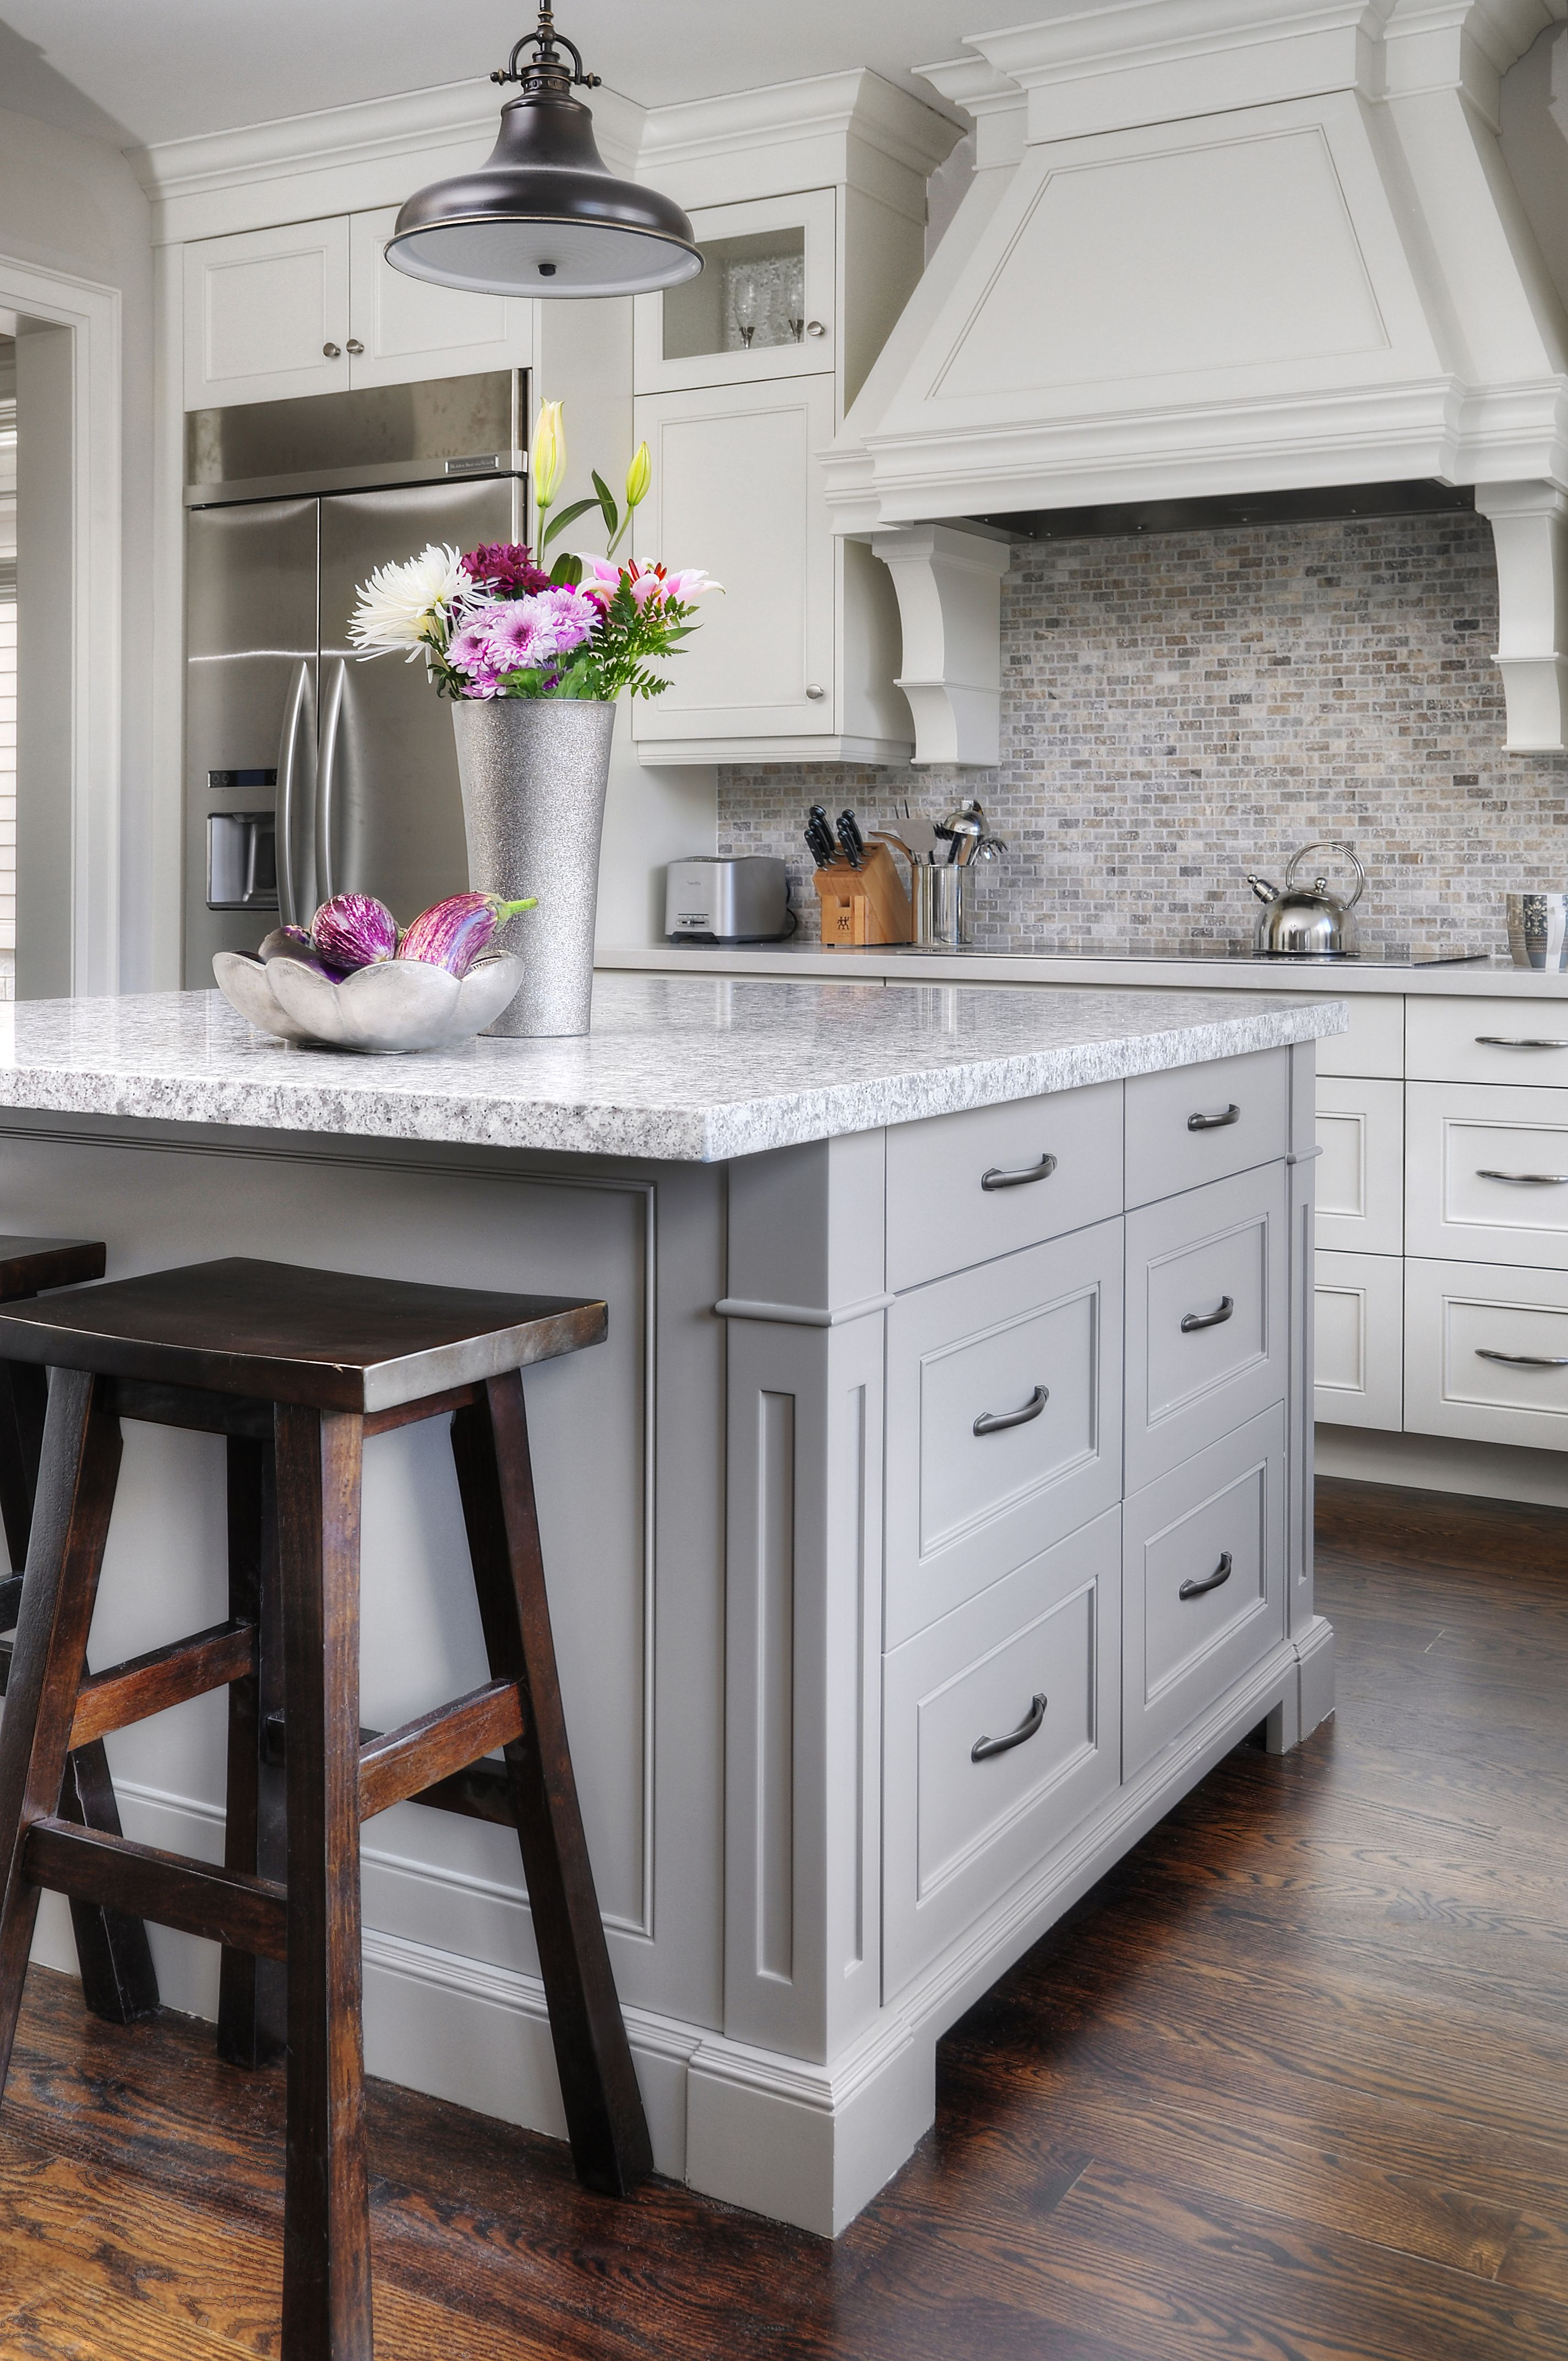 Cocina de ideas moldeo isla - Casual Oakville Kitchen